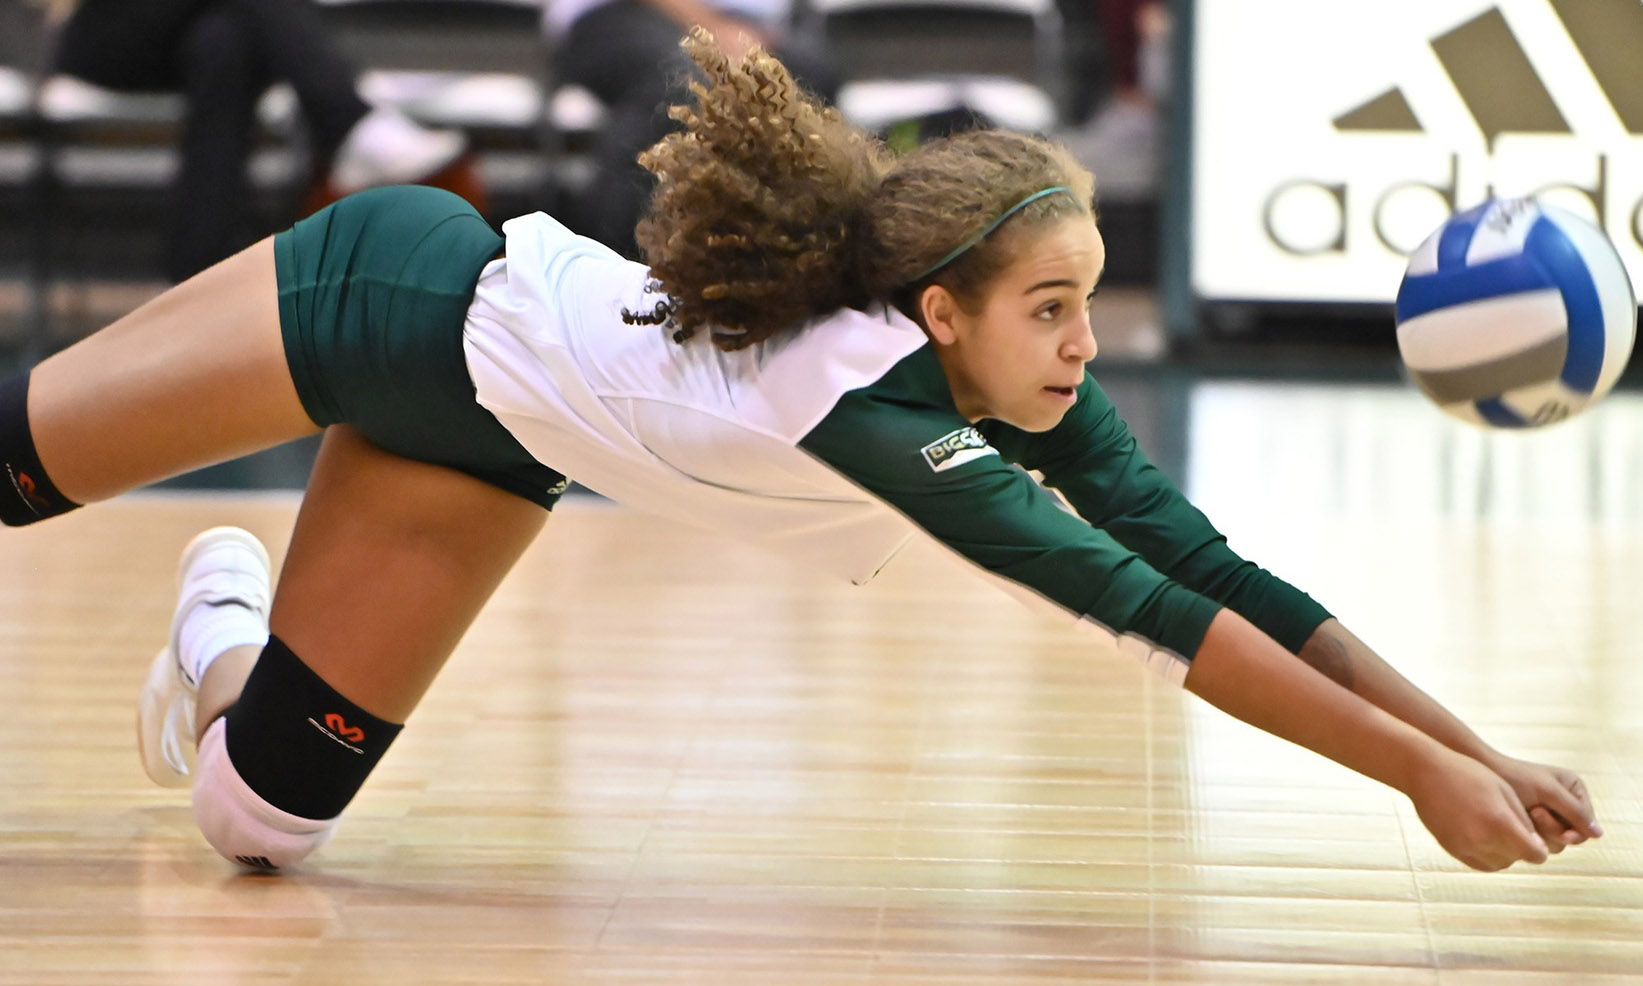 VOLLEYBALL FALLS TO 9-8 IN LEAGUE PLAY AFTER FIVE-SET ROAD LOSS AT PORTLAND STATE